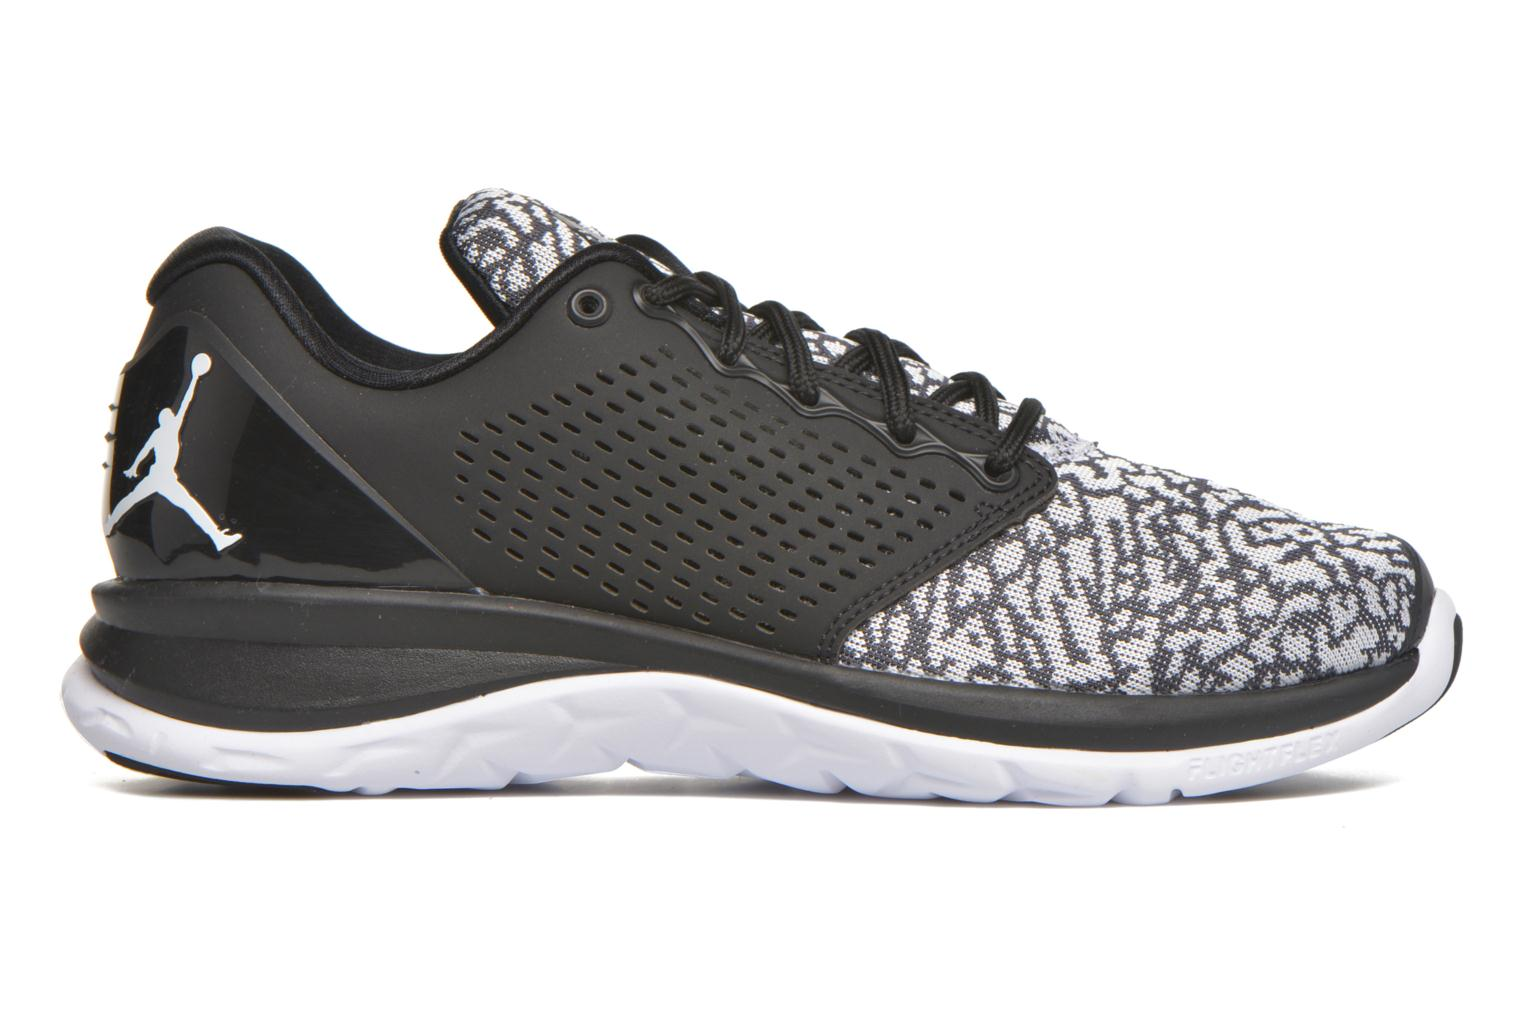 Jordan Trainer St Black/White-Infrared 23